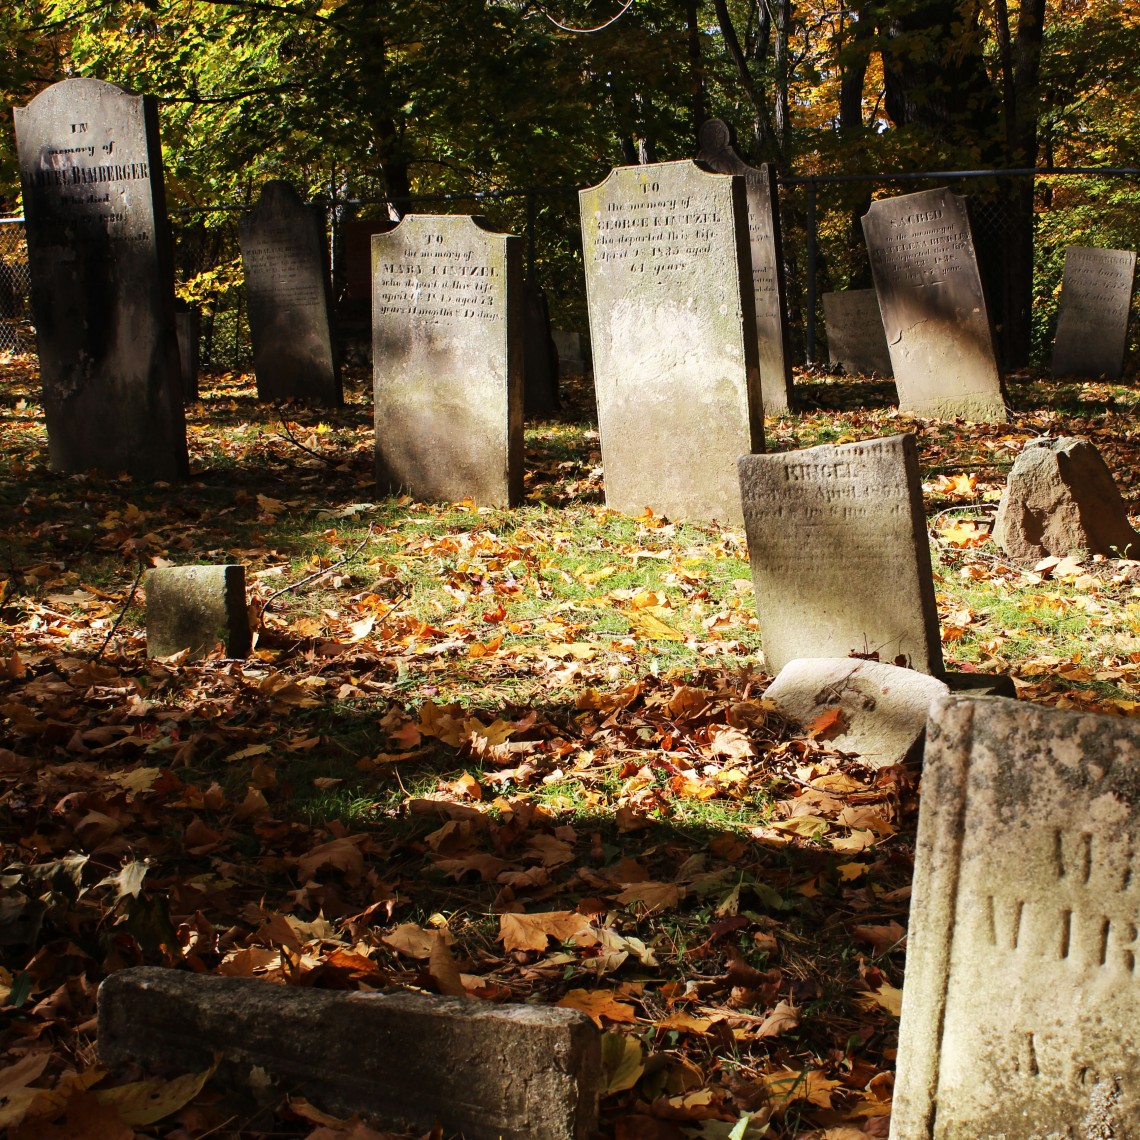 Binkley 1803 Graveyard, Hamilton (Ont). Photo by @erskinec